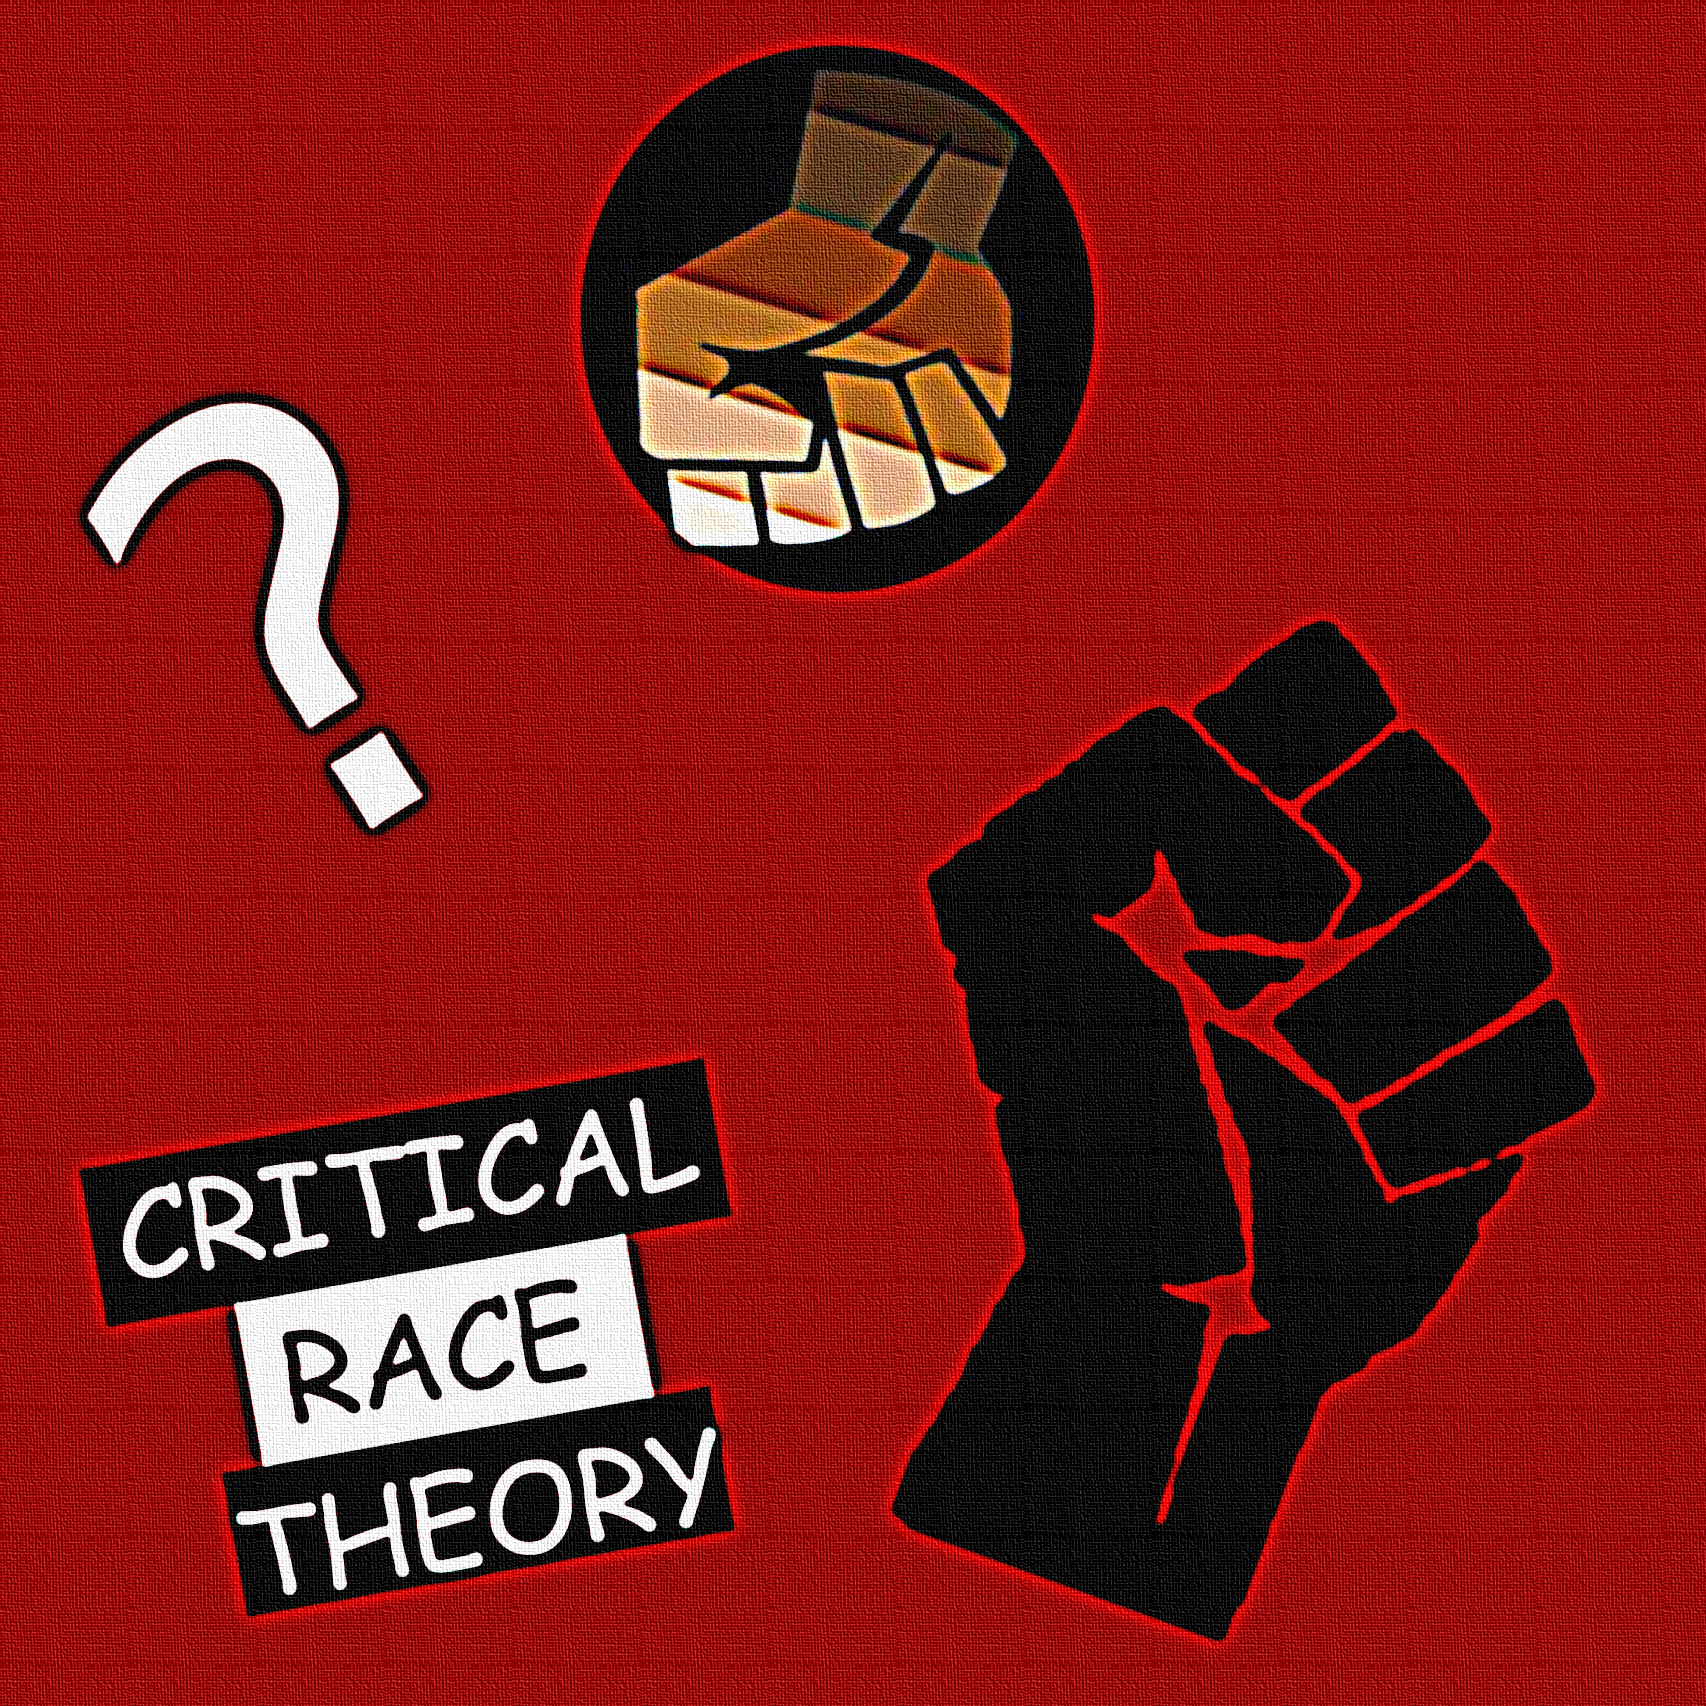 """Image of a question mark, a solid black clenched fist, a multi-skin-color striped fist, and the words """"CRITICAL RACE THEORY."""""""